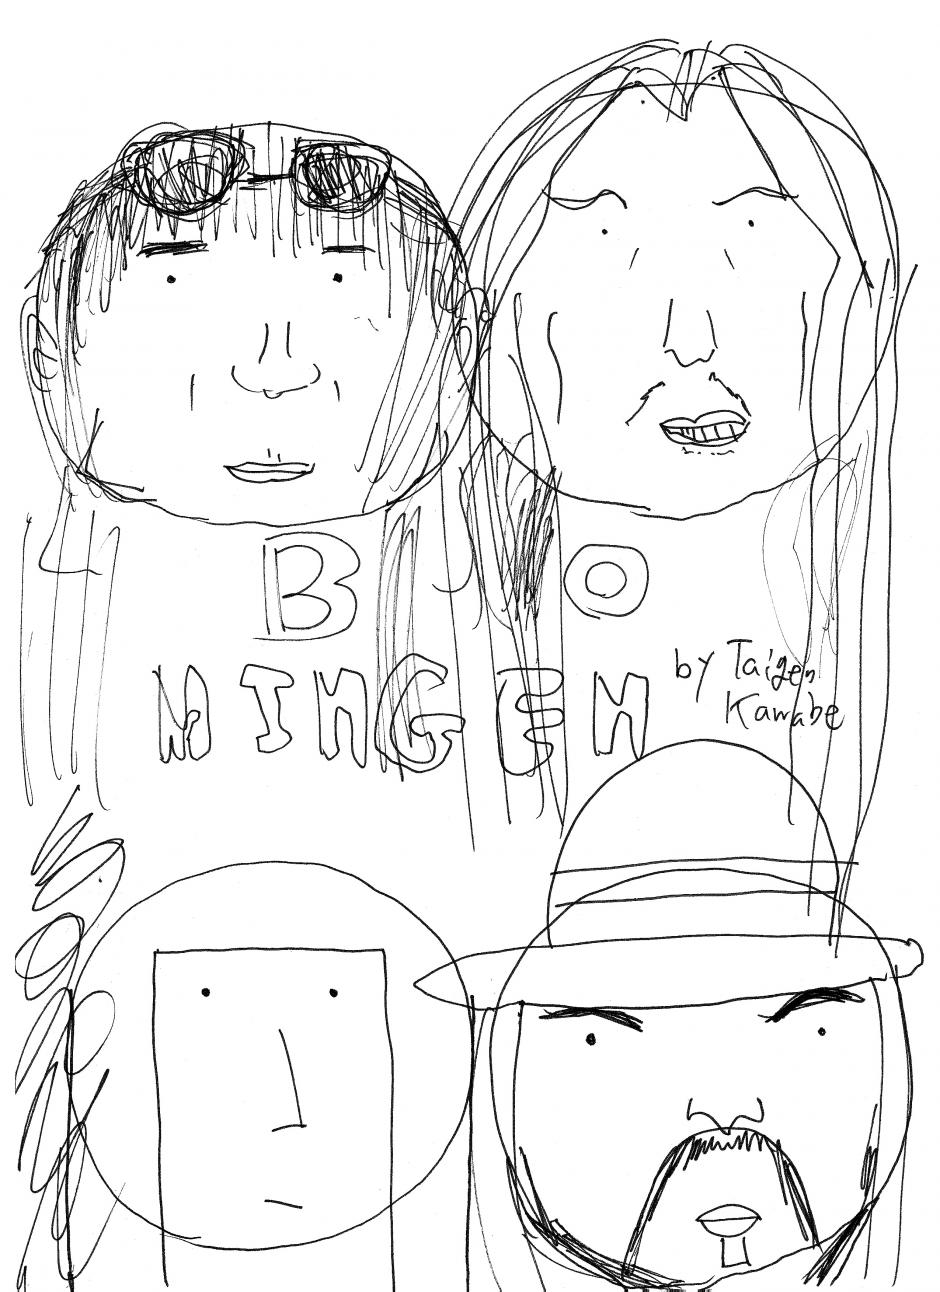 Bo ningen drawing by taigen kamabe